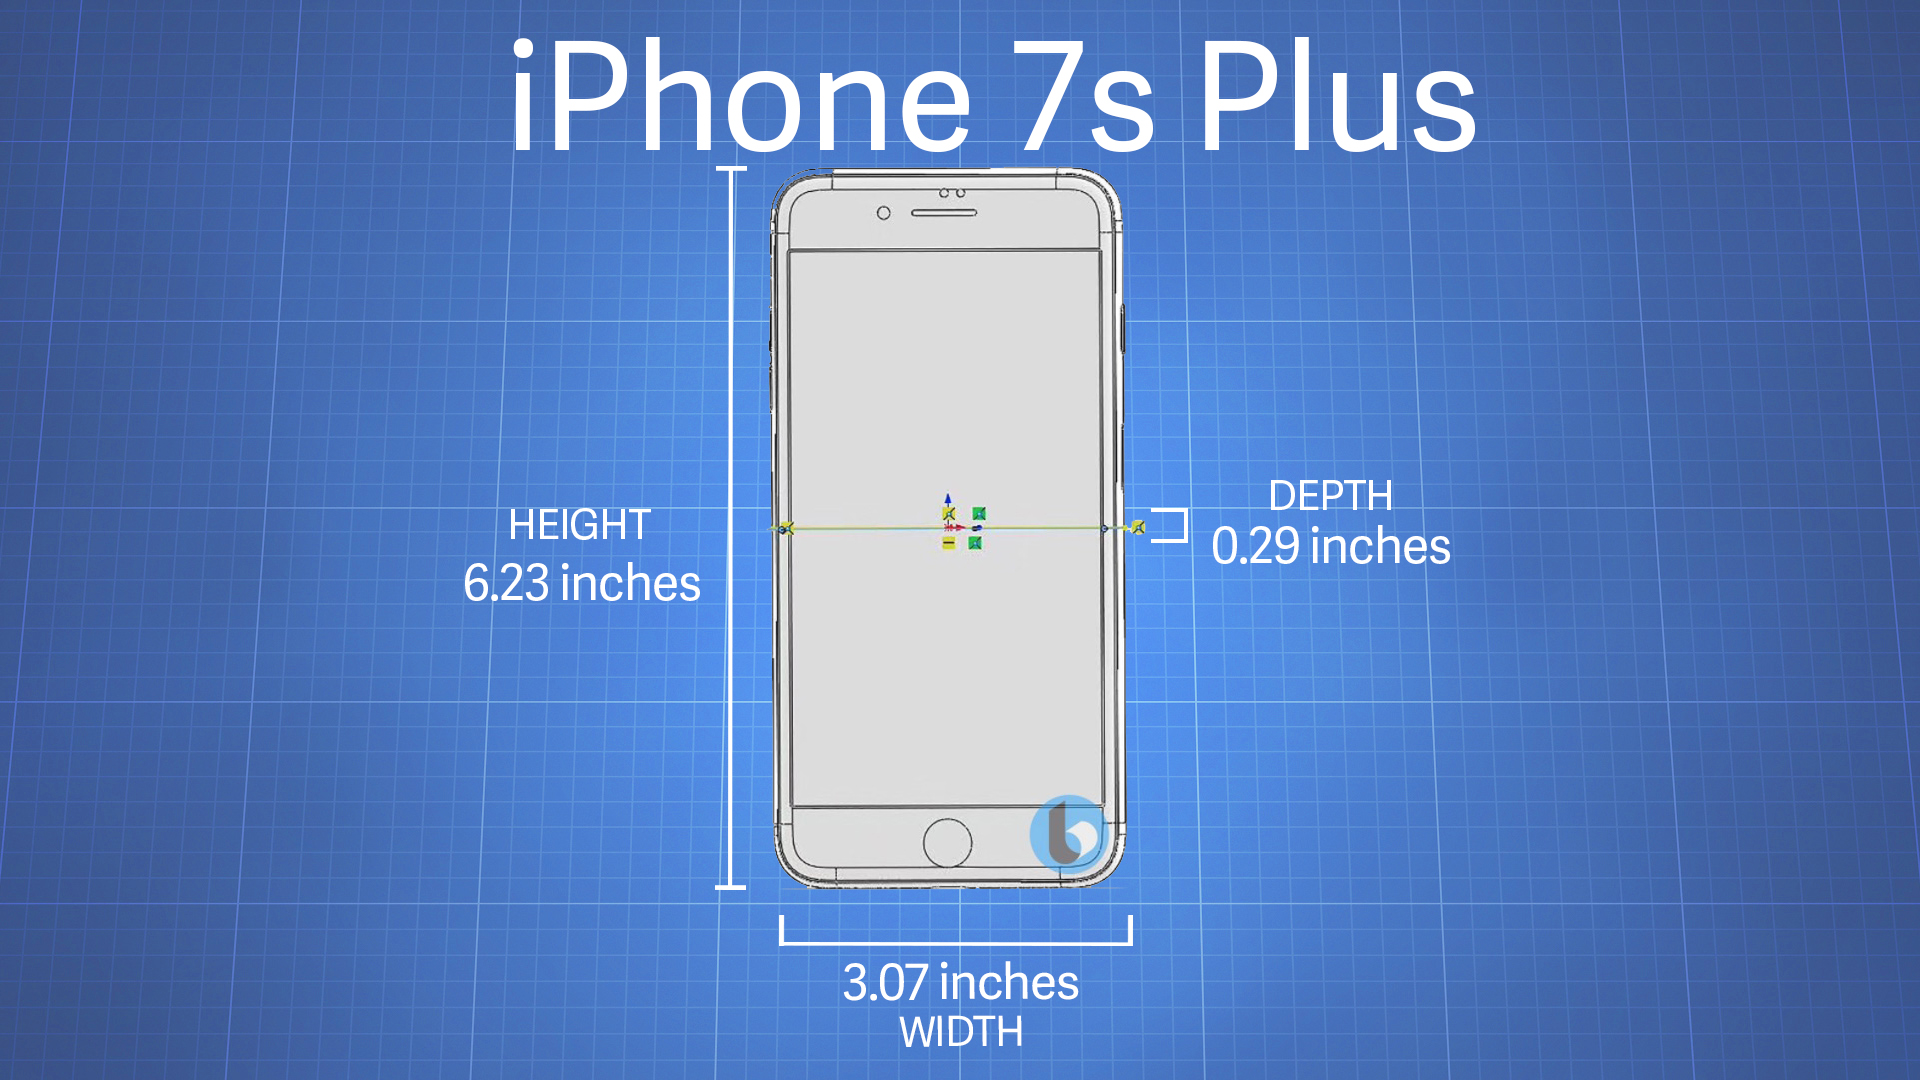 iPhone-7s-Plus